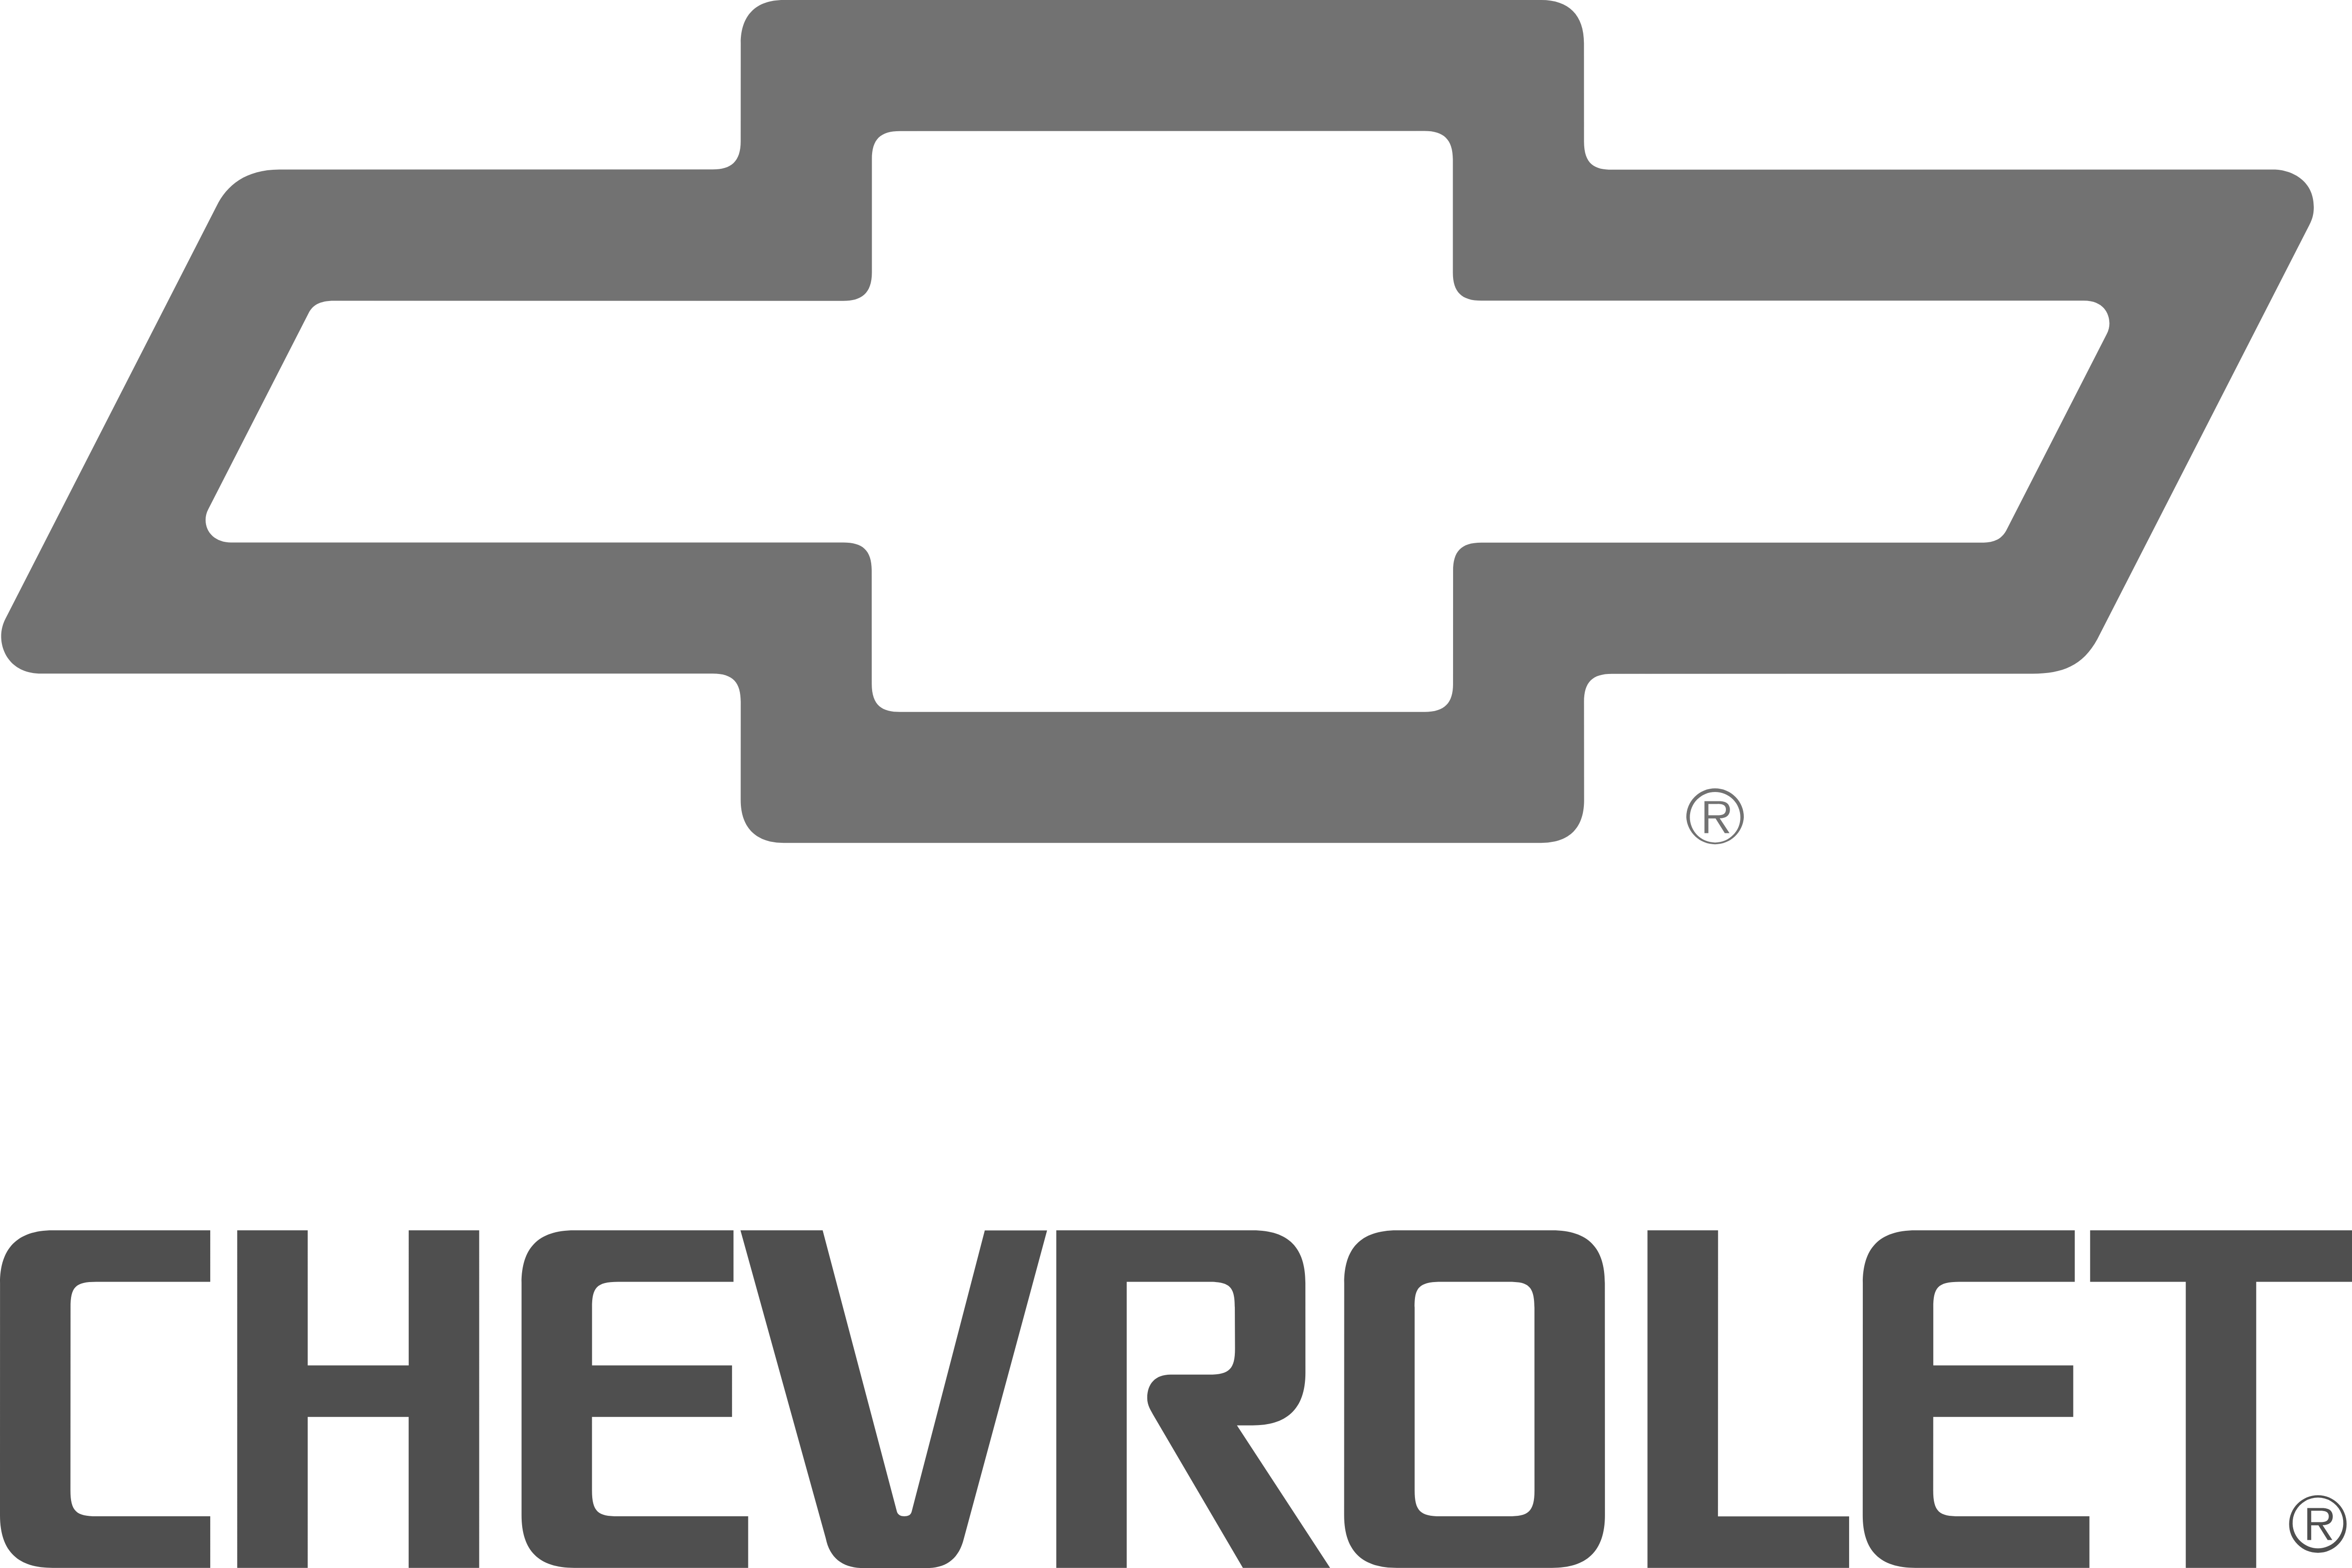 Chevrolet Logos Download